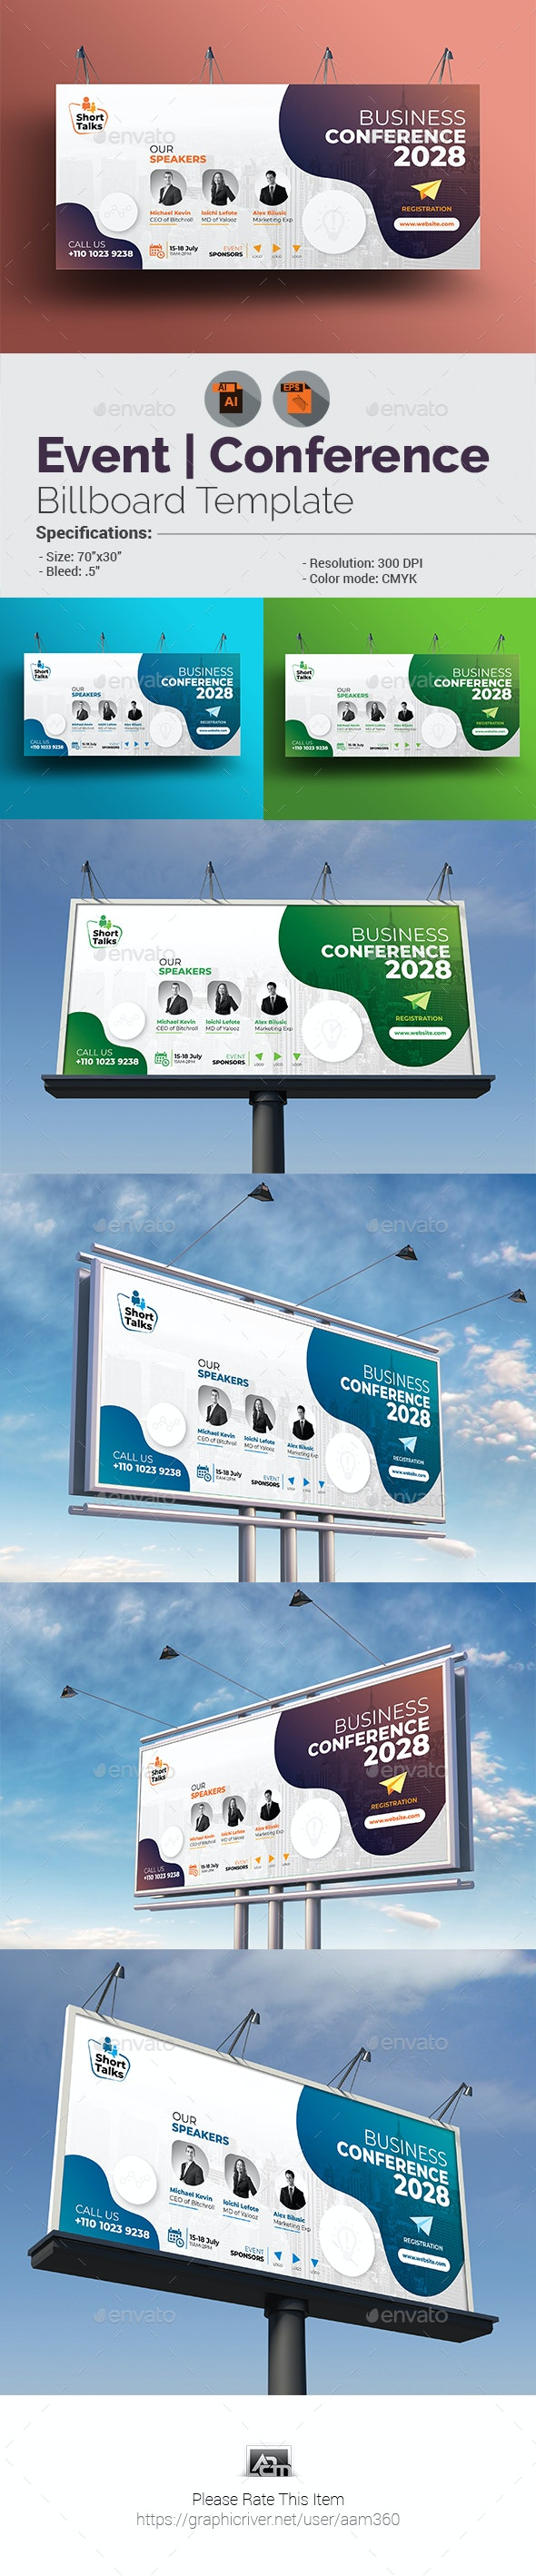 Business Conference Billboard Template - Signage Print Templates